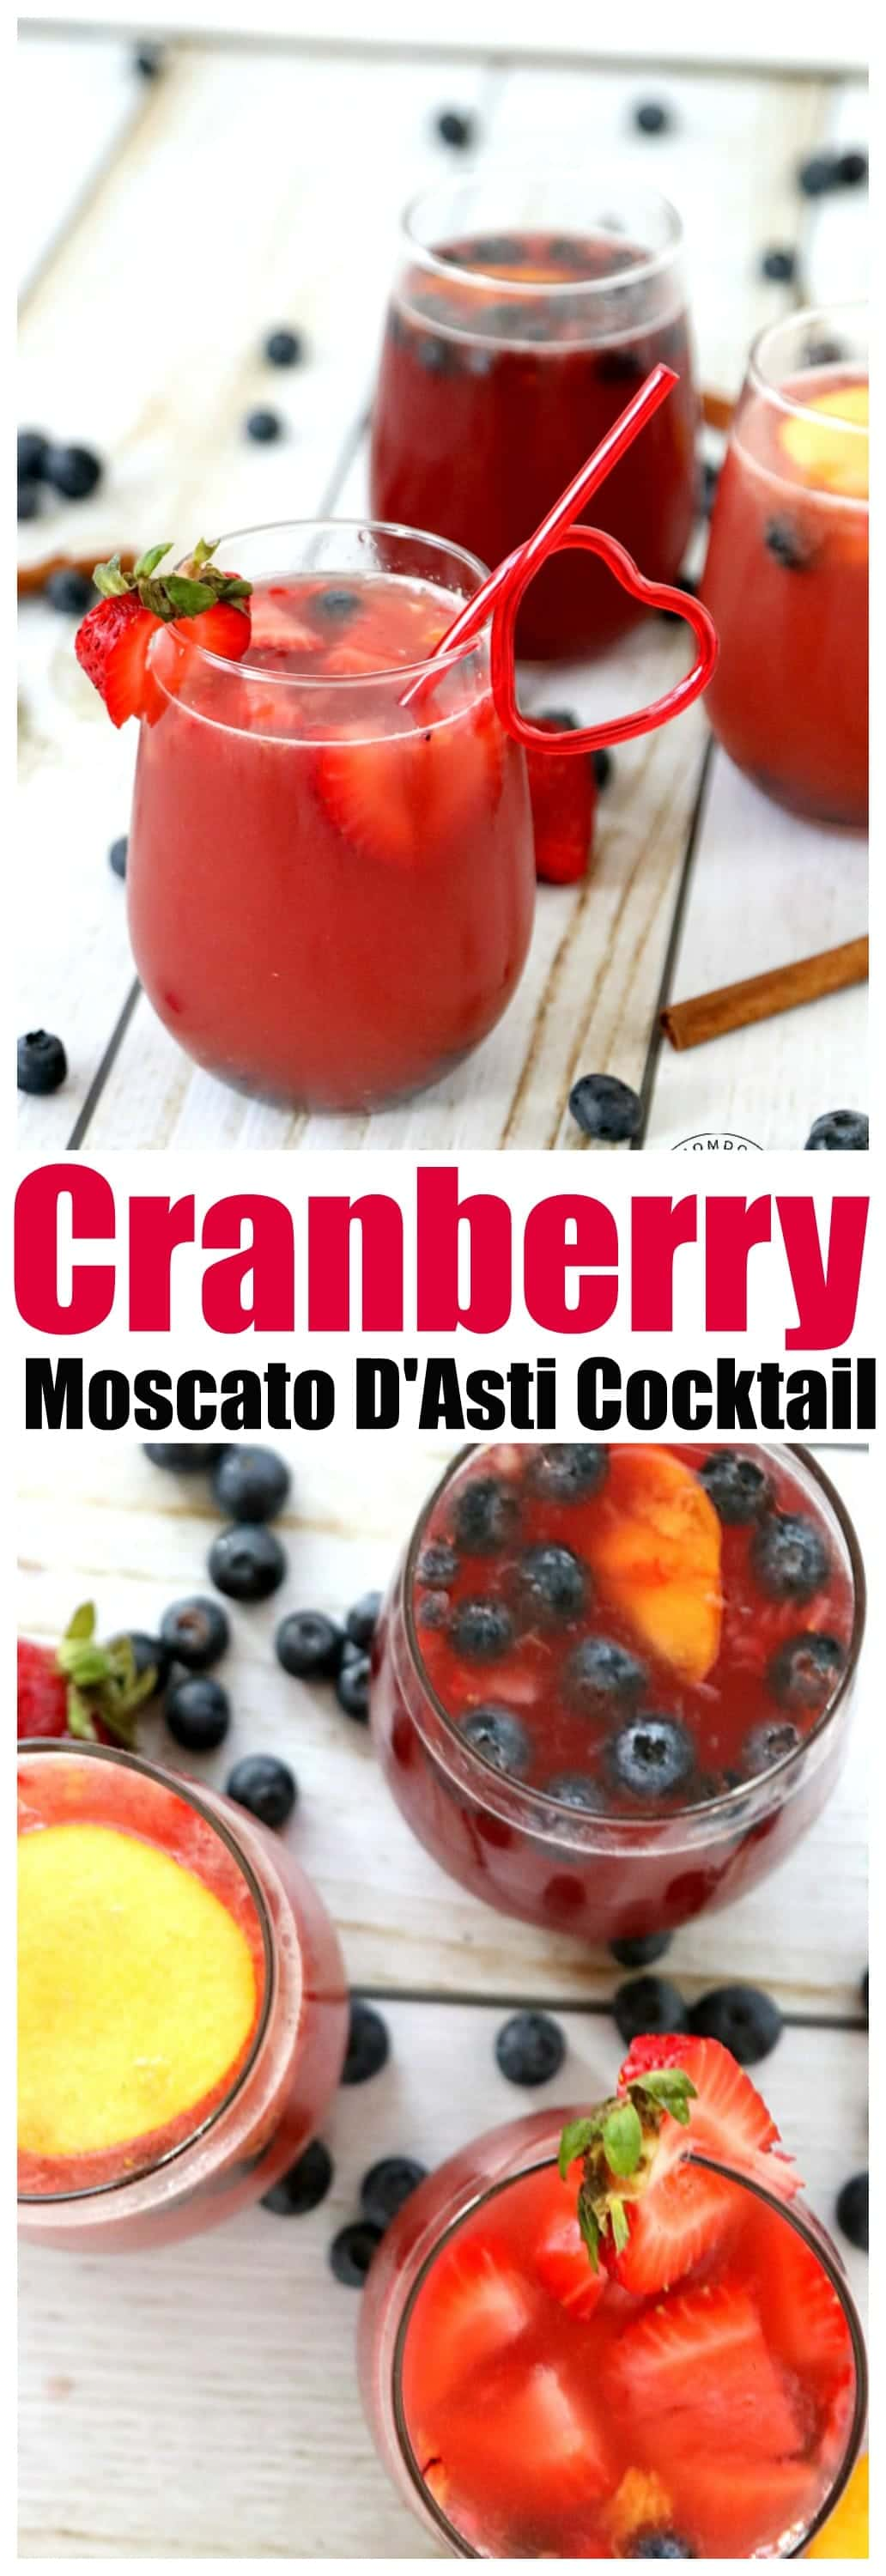 Cranberry Moscato D'Asti Cocktail Recipe